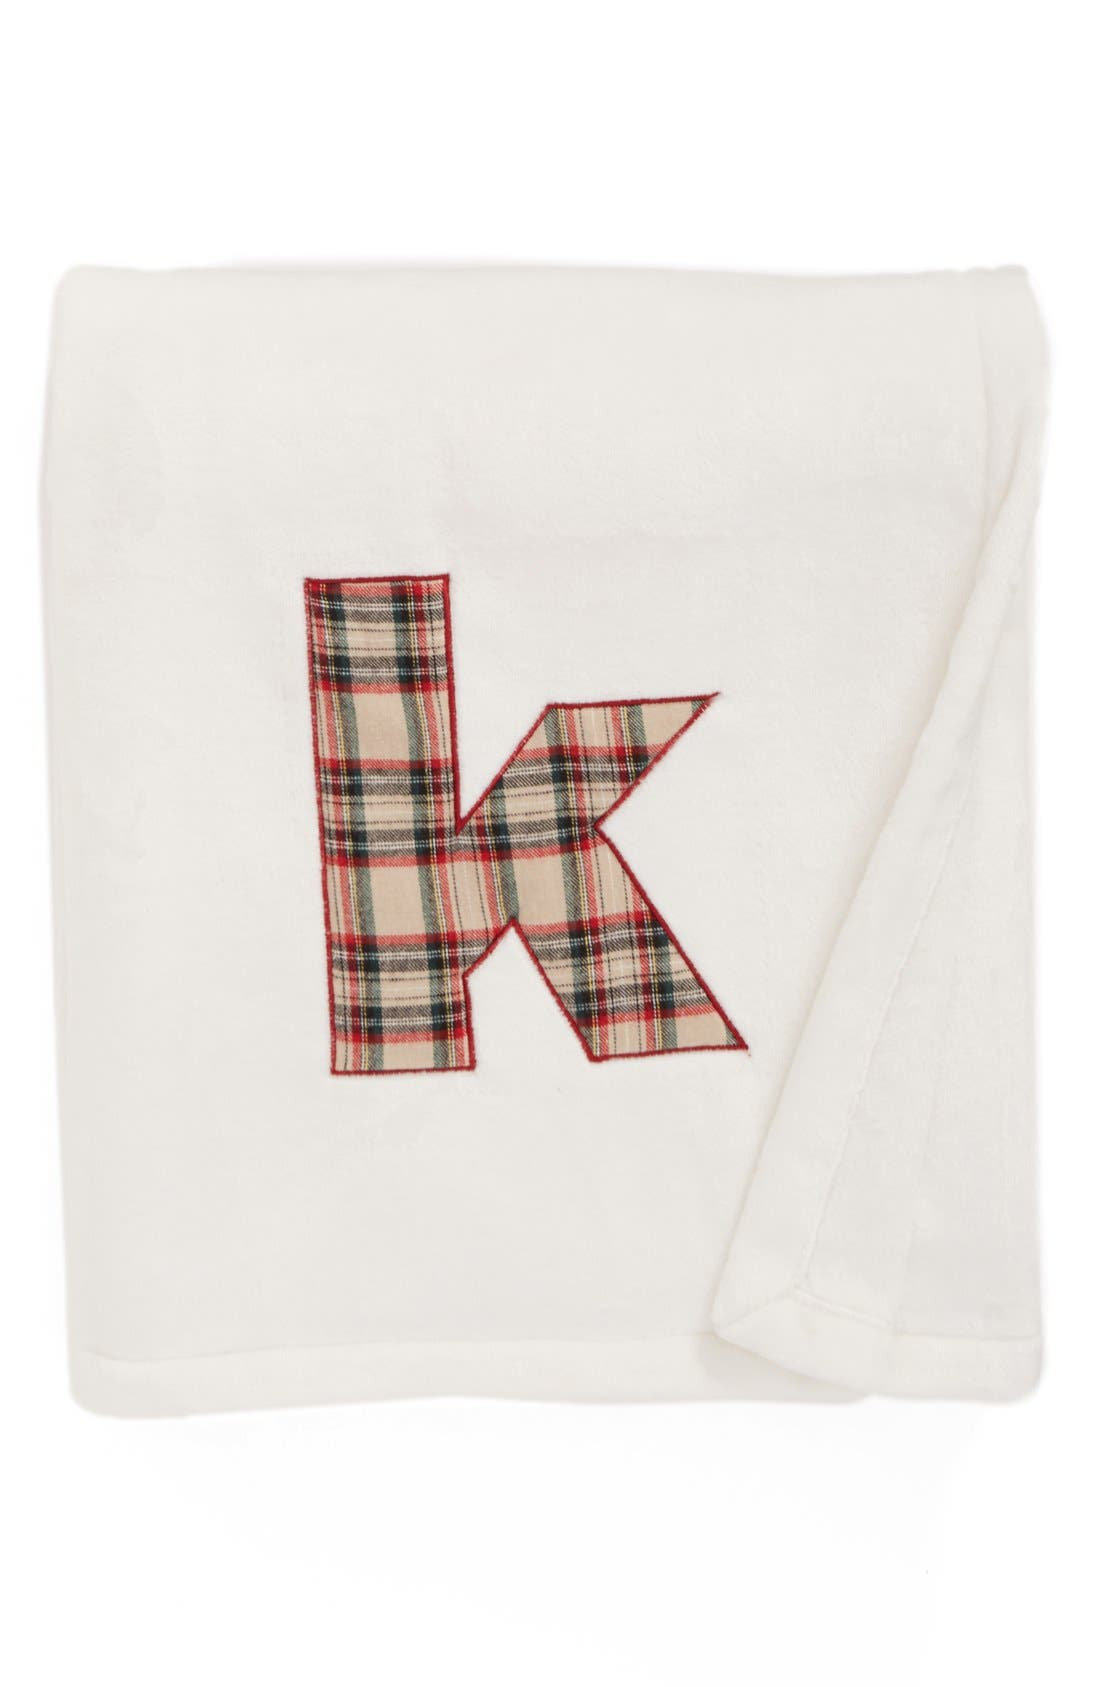 Main Image - Levtex Plaid Initial Plush Throw Blanket